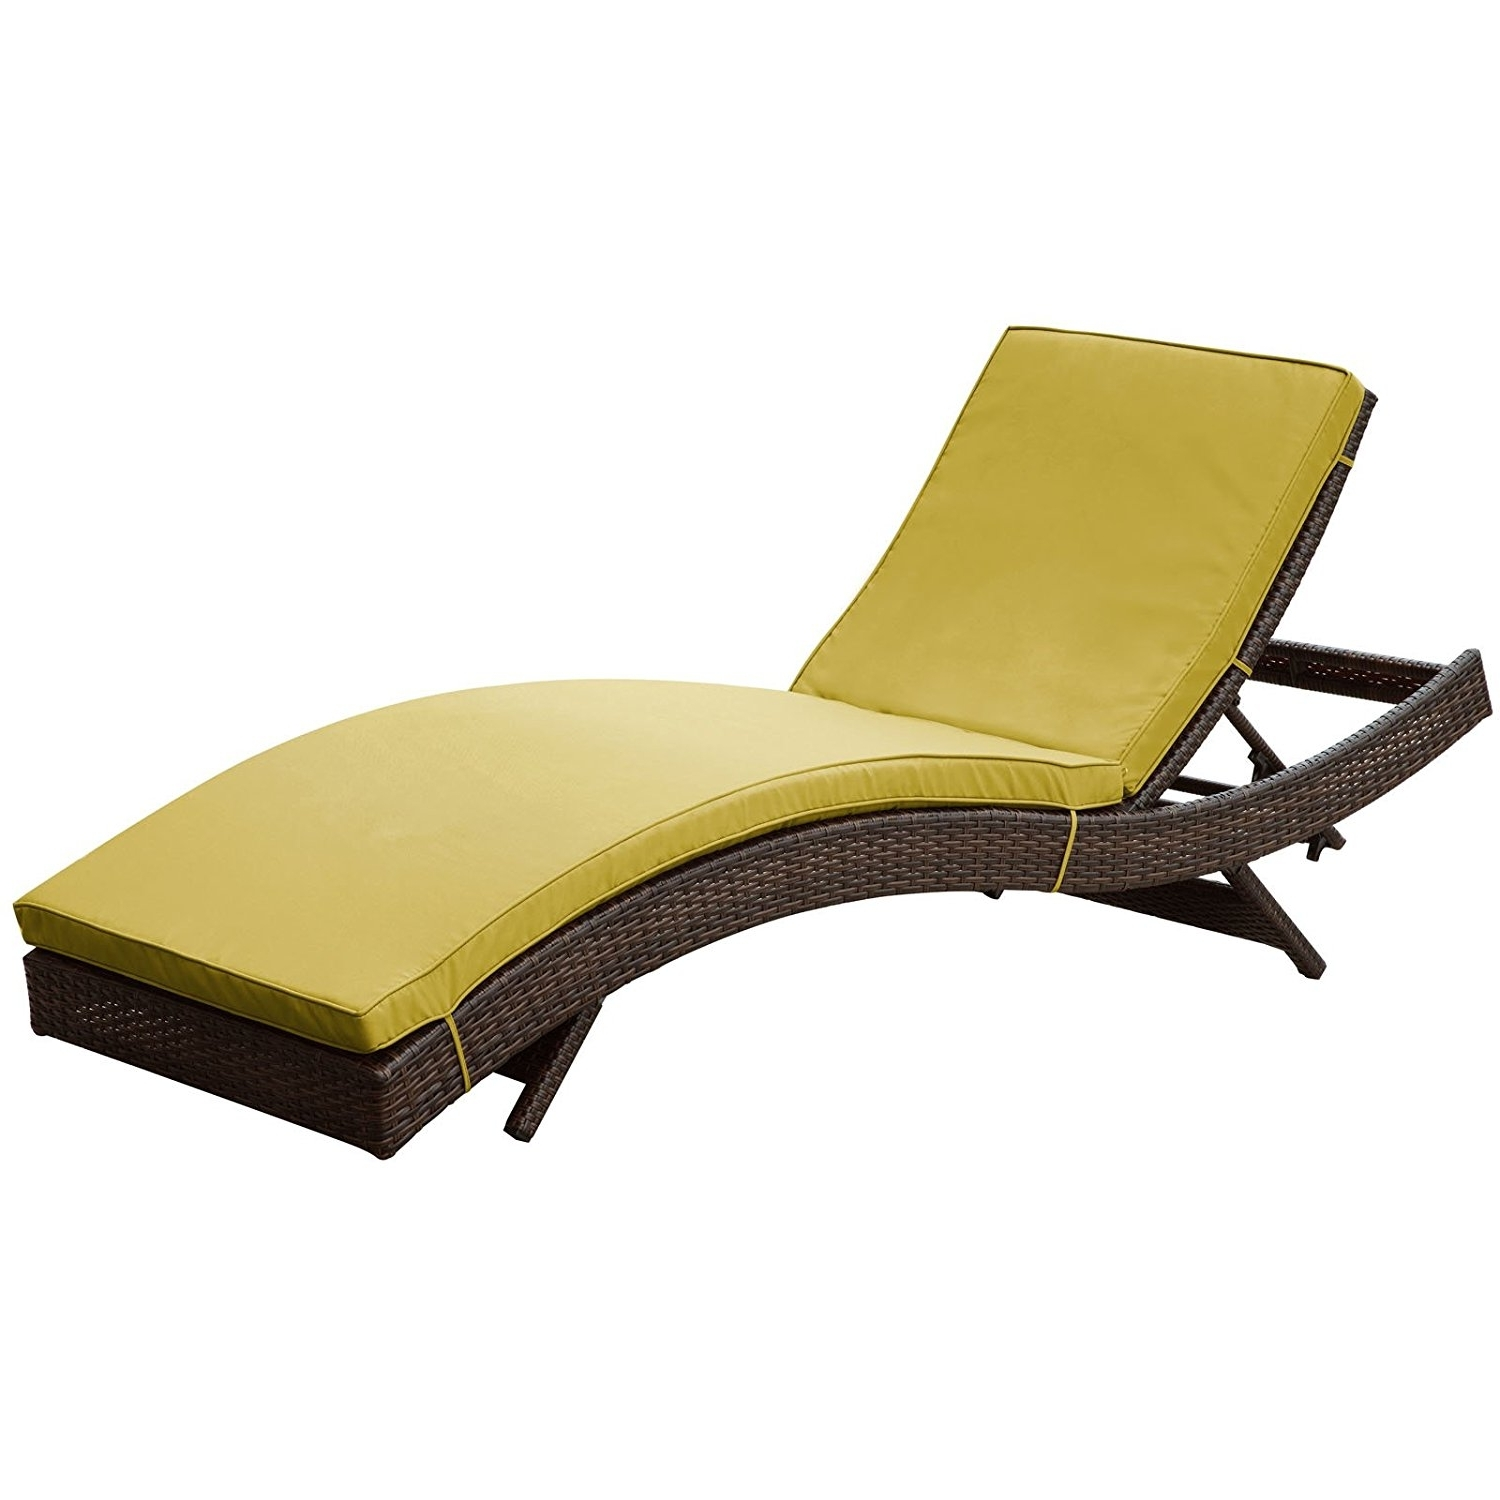 Popular Amazon: Modway Peer Outdoor Wicker Chaise Lounge Chair With Inside Rattan Chaise Lounges (View 9 of 15)